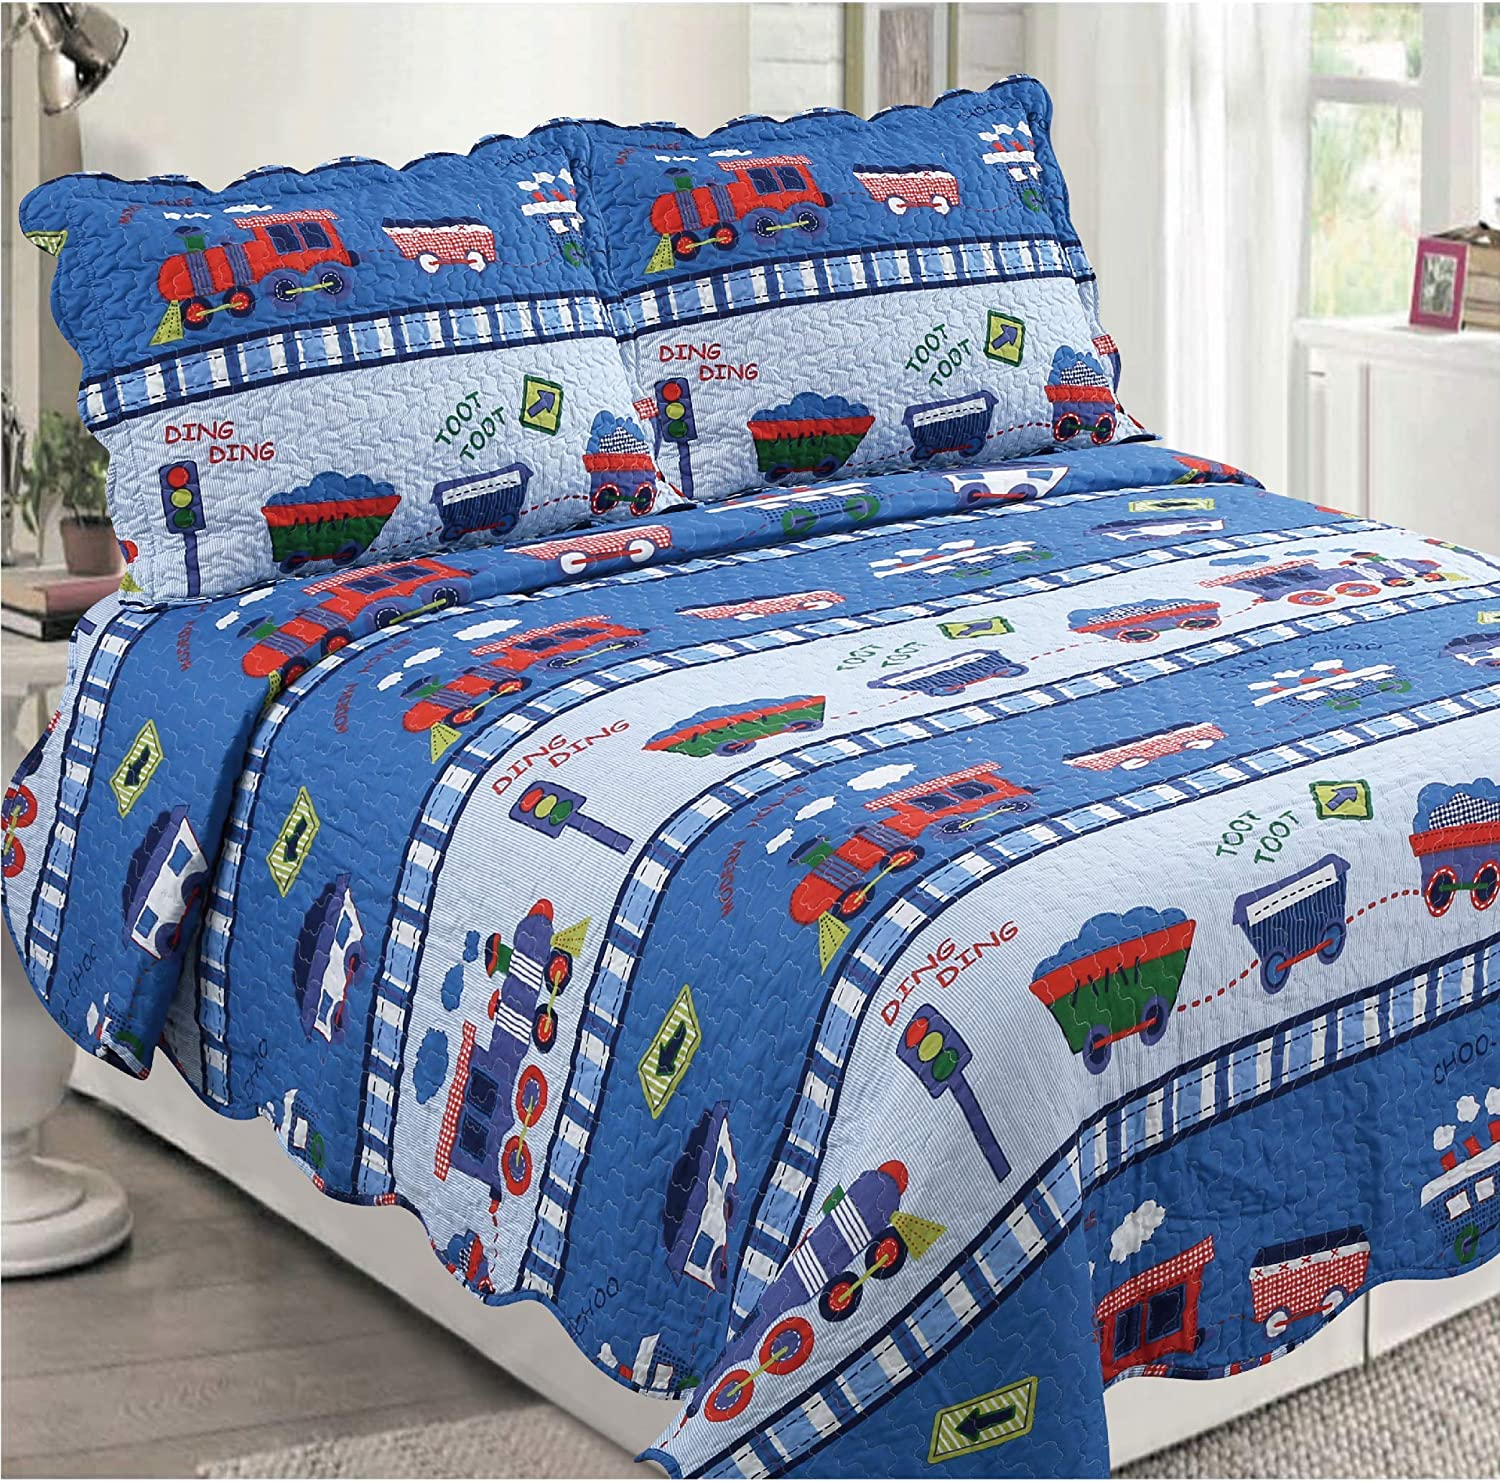 Golden Linens 3 pcs (1 Quilt, 2 Pillow Cases) Bedspread Kids Quilt Multicolor Blue Train at Work # Full Toot Toot Train(29)